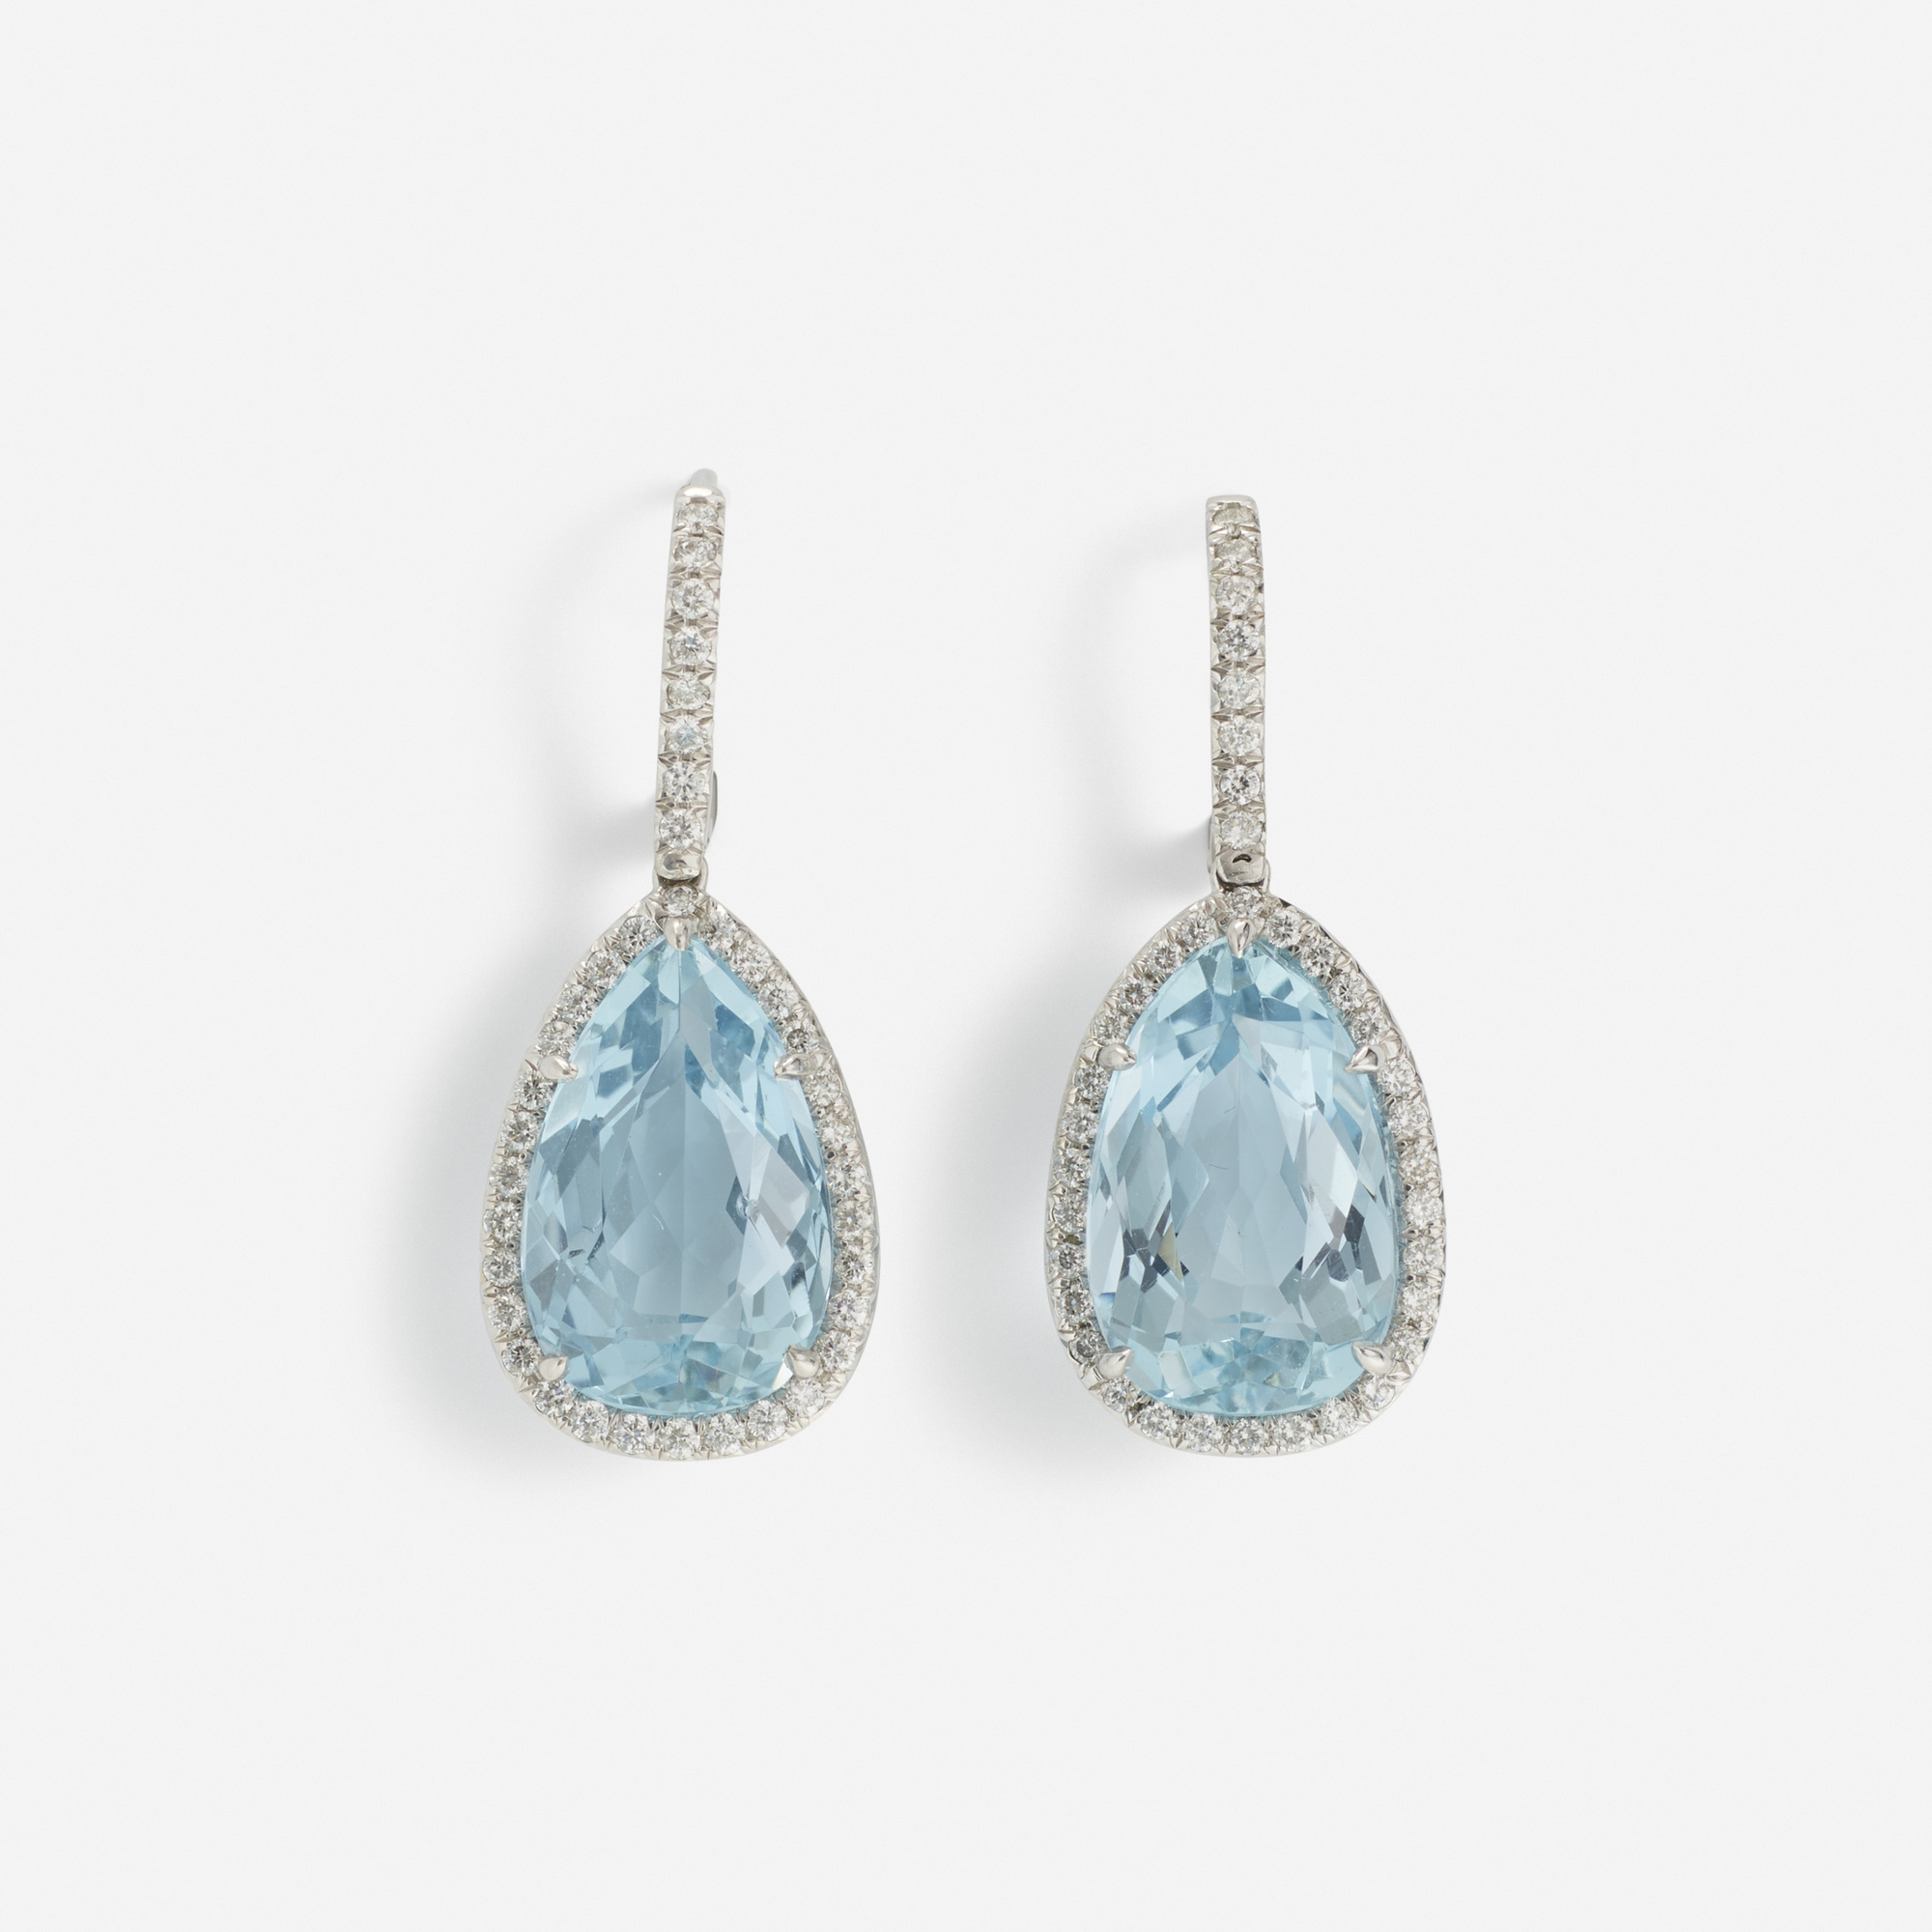 110:  / A pair of gold, aquamarine and diamond earrings (1 of 1)